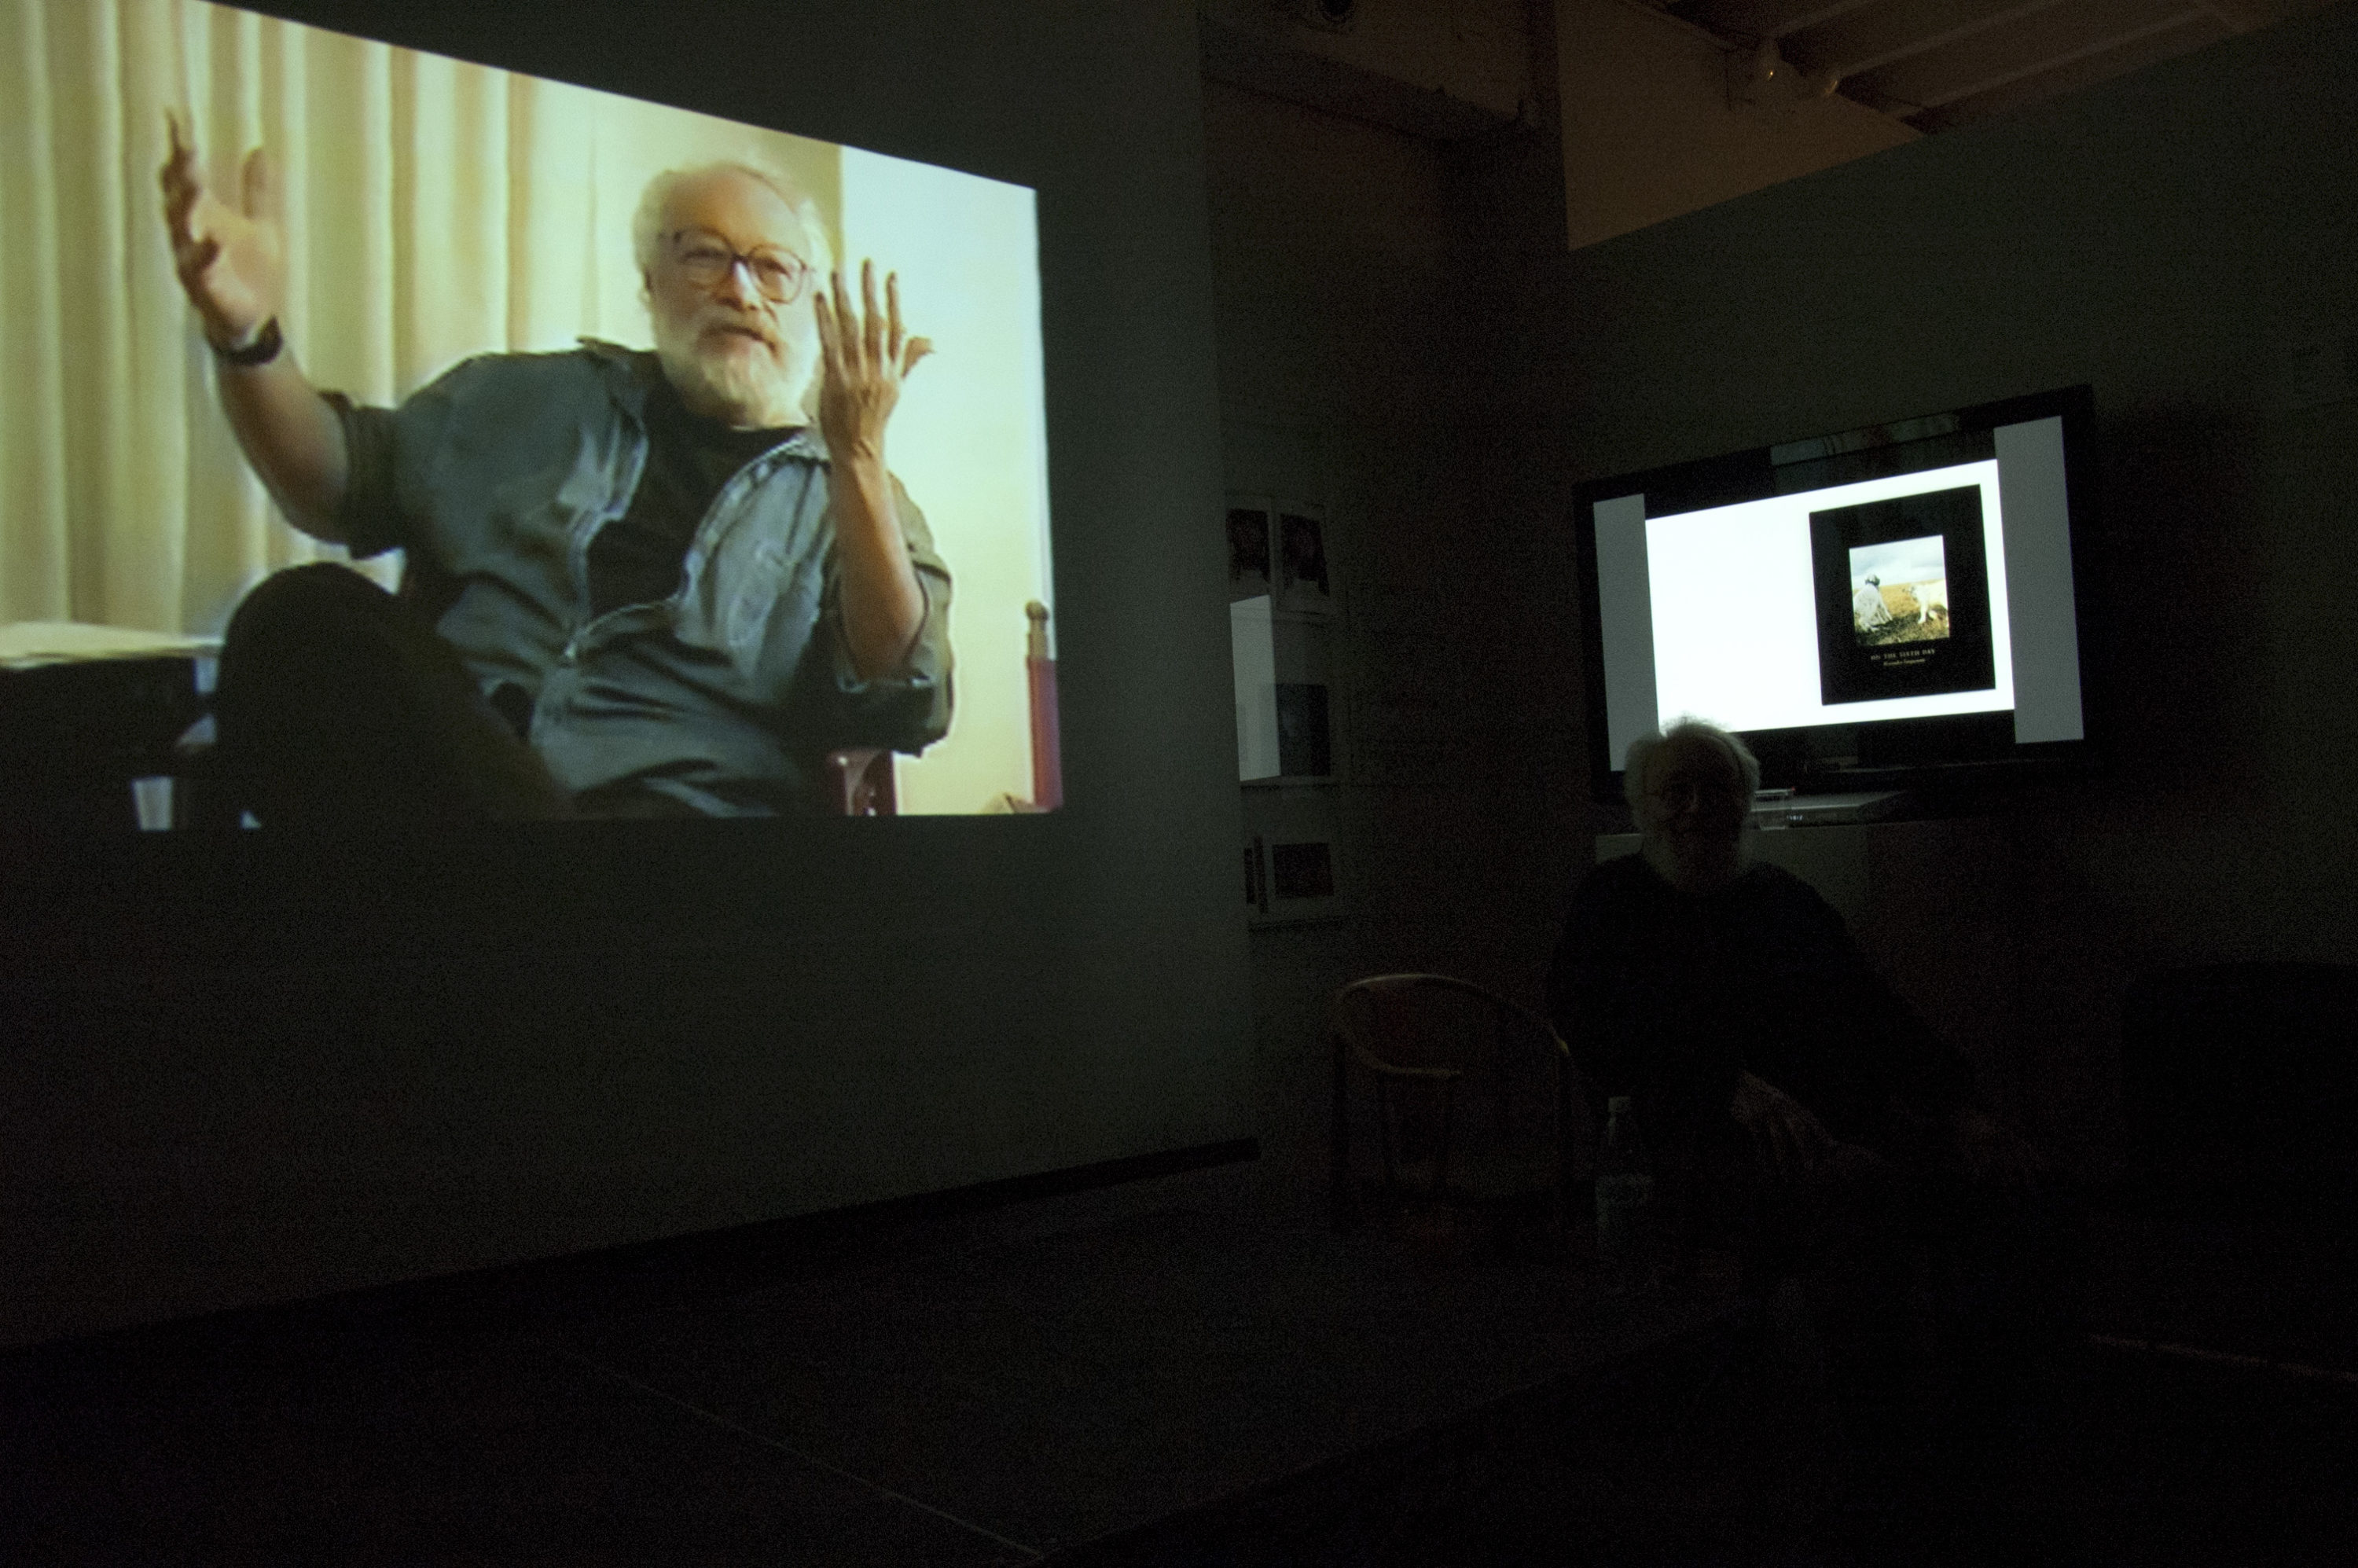 The evening began with a five minute video from my teaching tapes